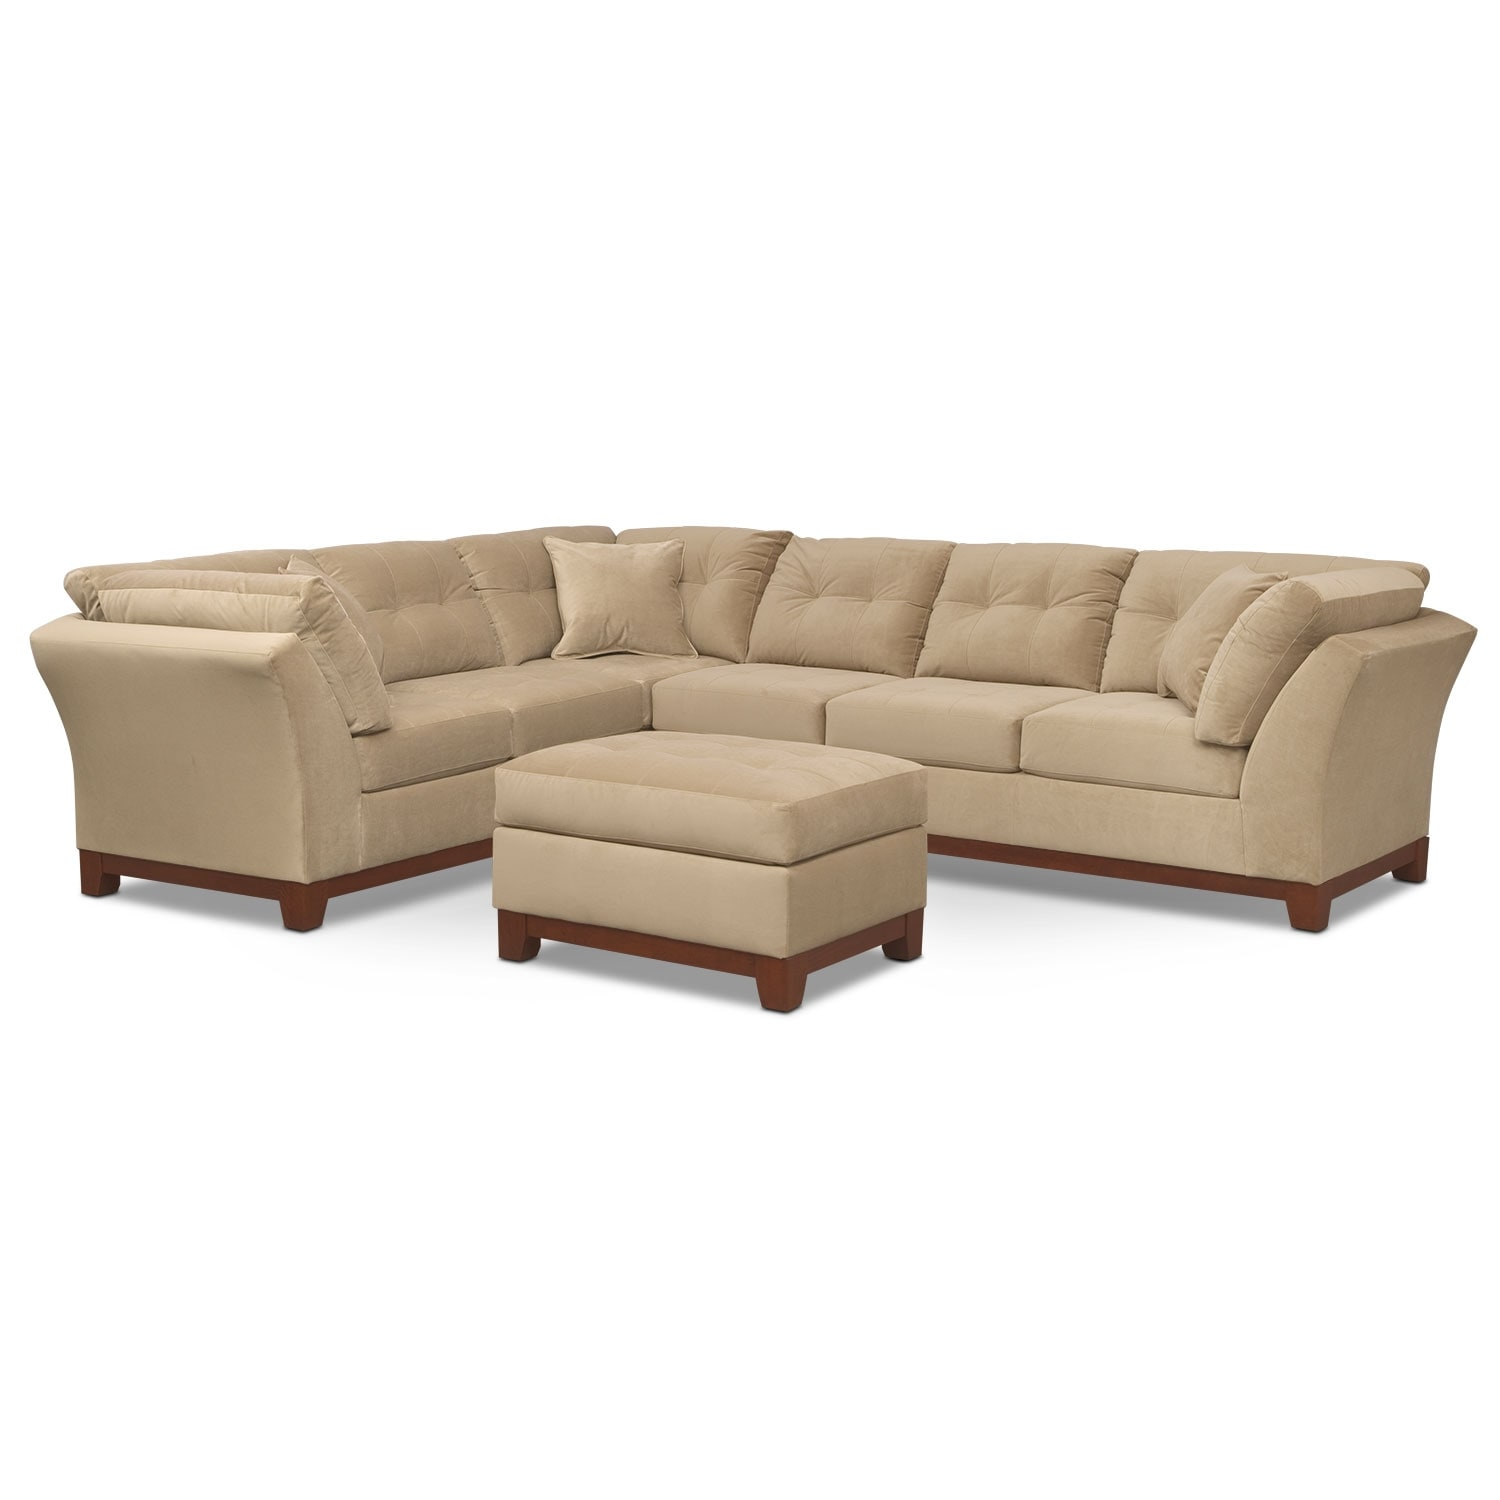 Living Room Furniture - Solace Cocoa II 2 Pc. Sectional and Ottoman